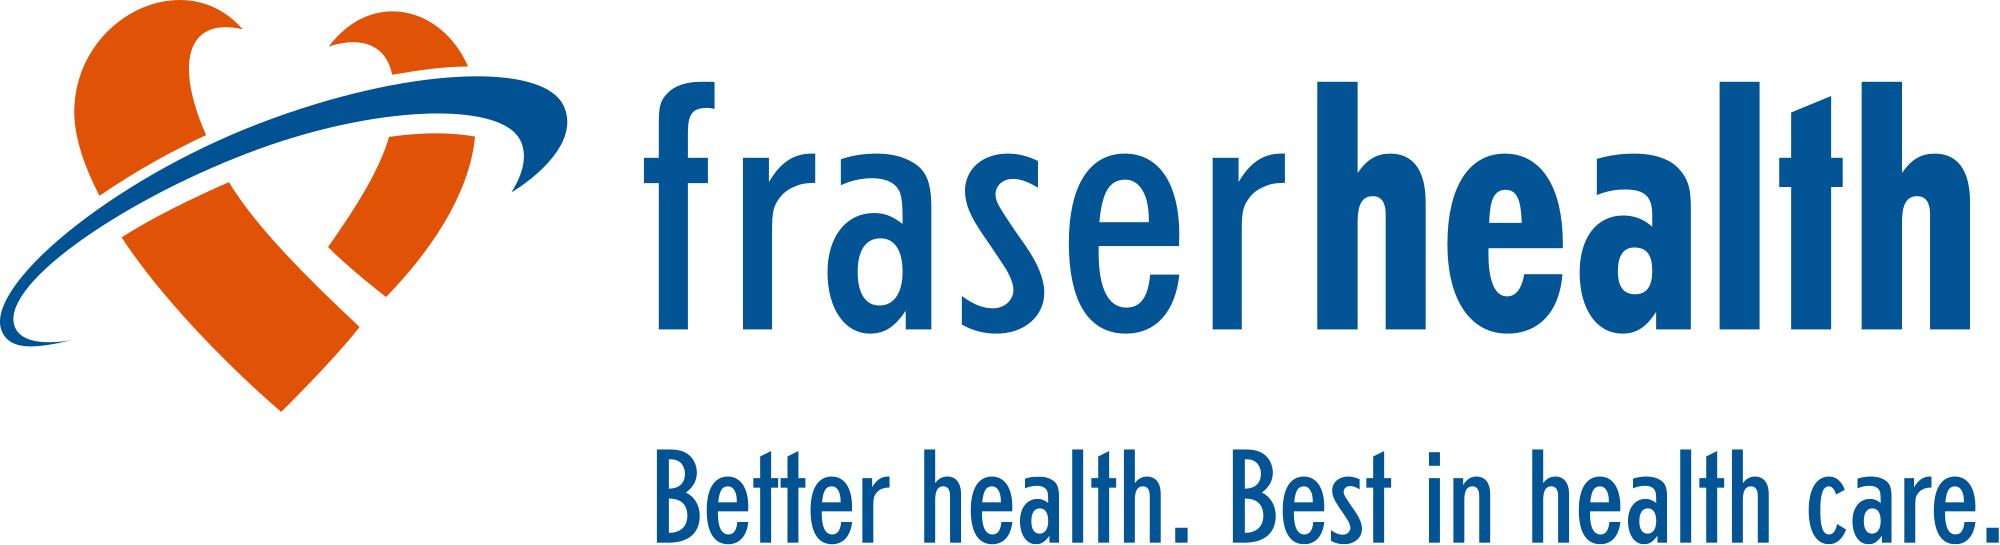 Fraser-Health-Authority